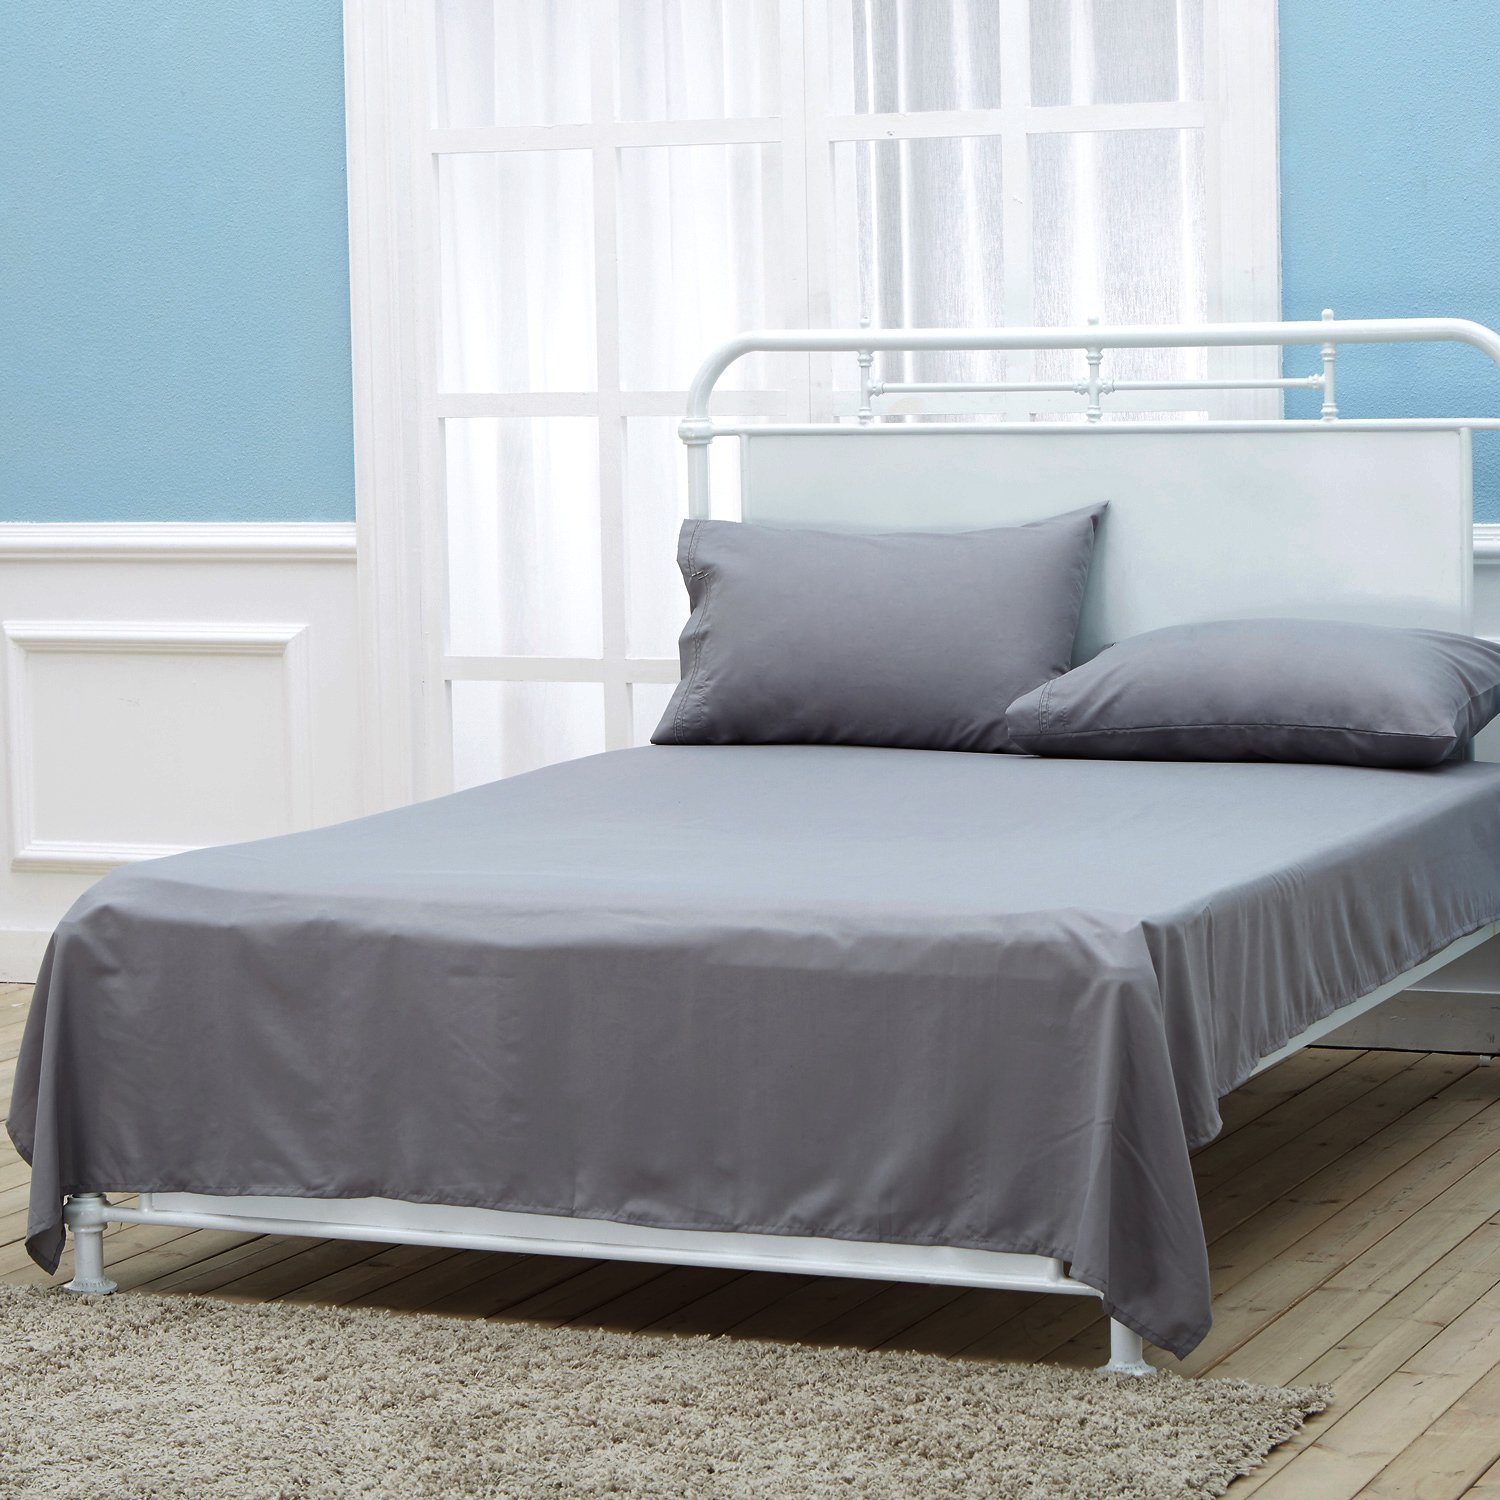 SEPOVEDA Queen Bed Sheet Set Brushed Microfiber Wrinkle Fade and Stain Resistant 1500 Thread Count Bedding Set